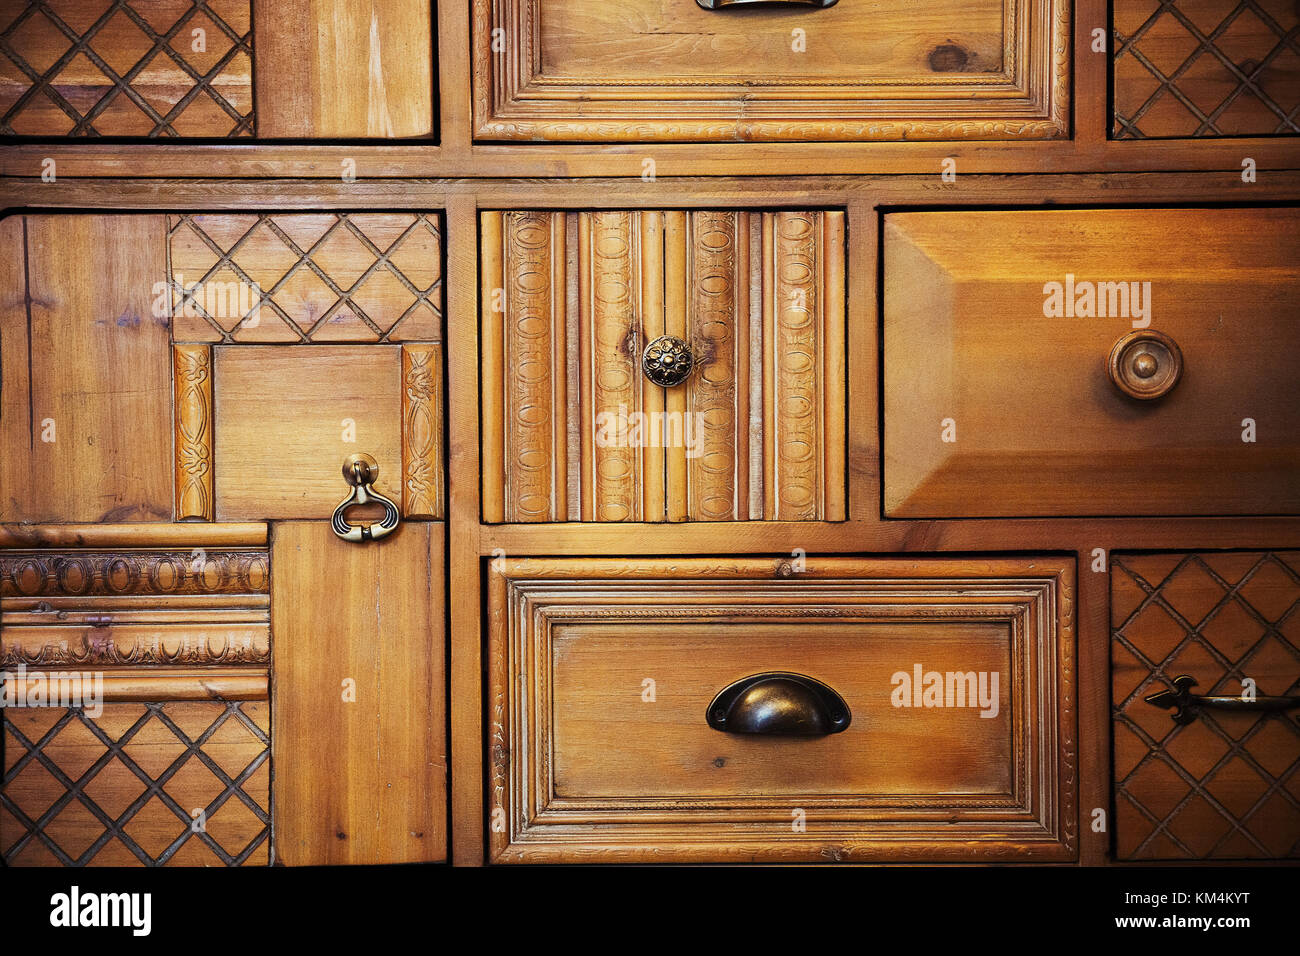 Wooden panels showing different wood finishes, carving, criss cross grooves, marks and handles. - Stock Image